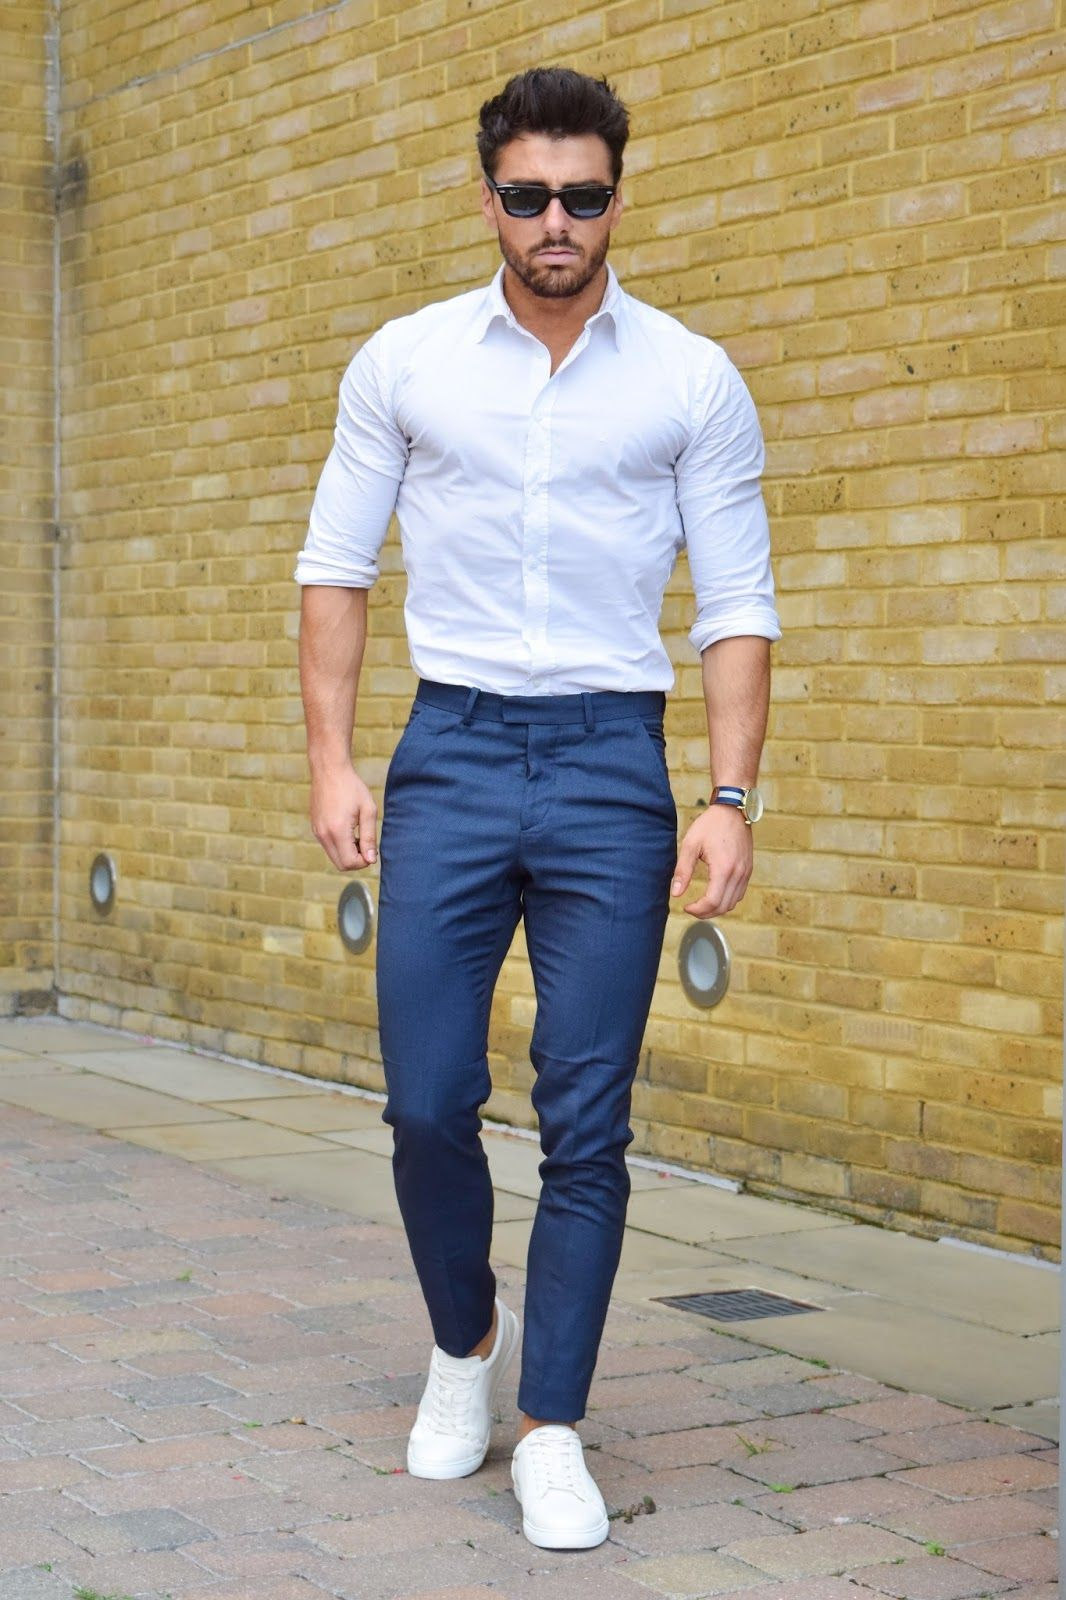 48f08a768e10 Coolest Men Street Styles You Should Follow 36  men  outfits   UrbanMenOutfits  menfashion